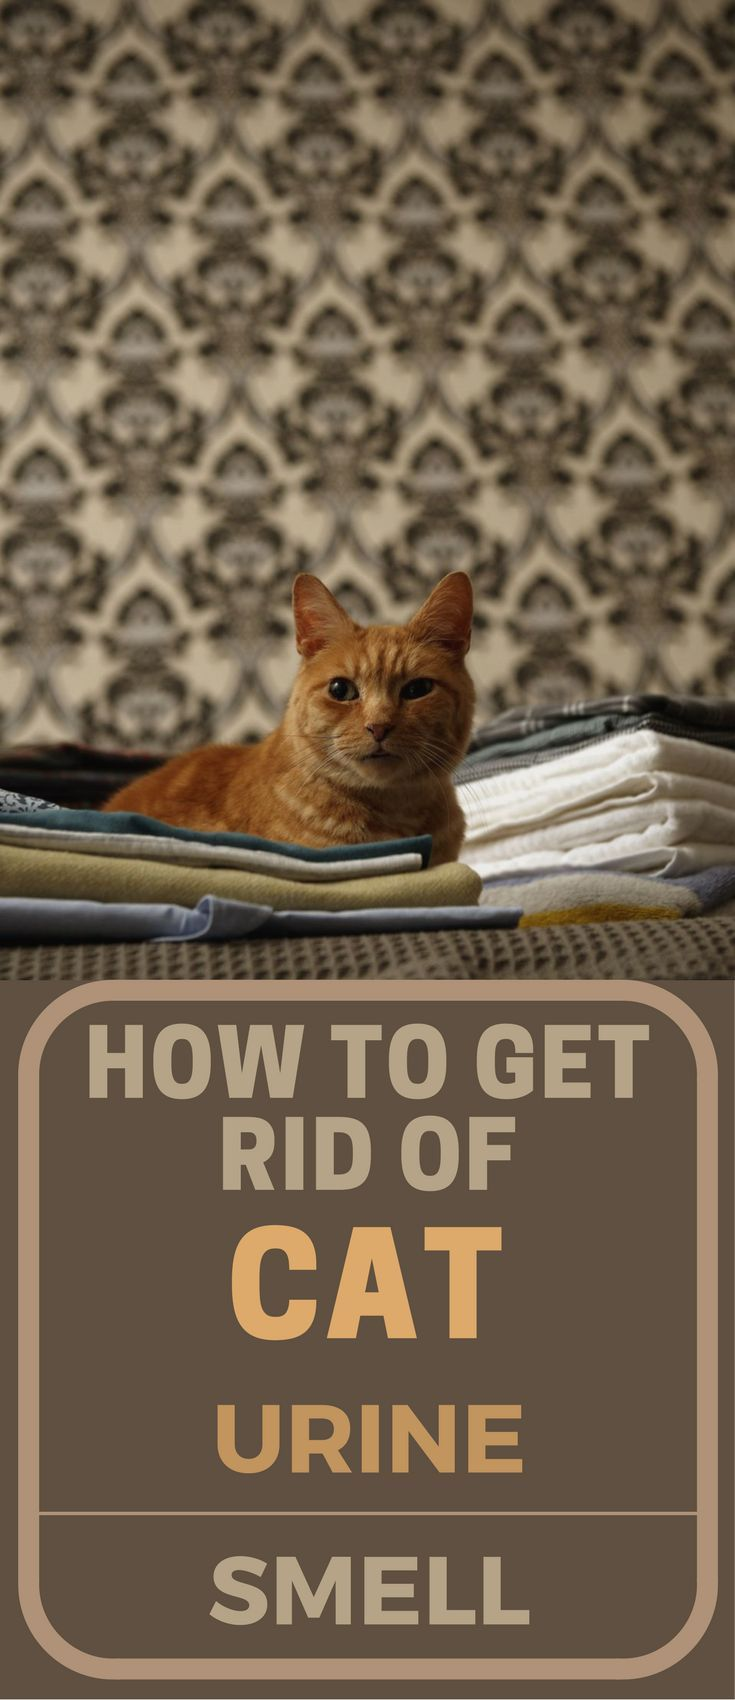 How to get rid of the smell of cat urine